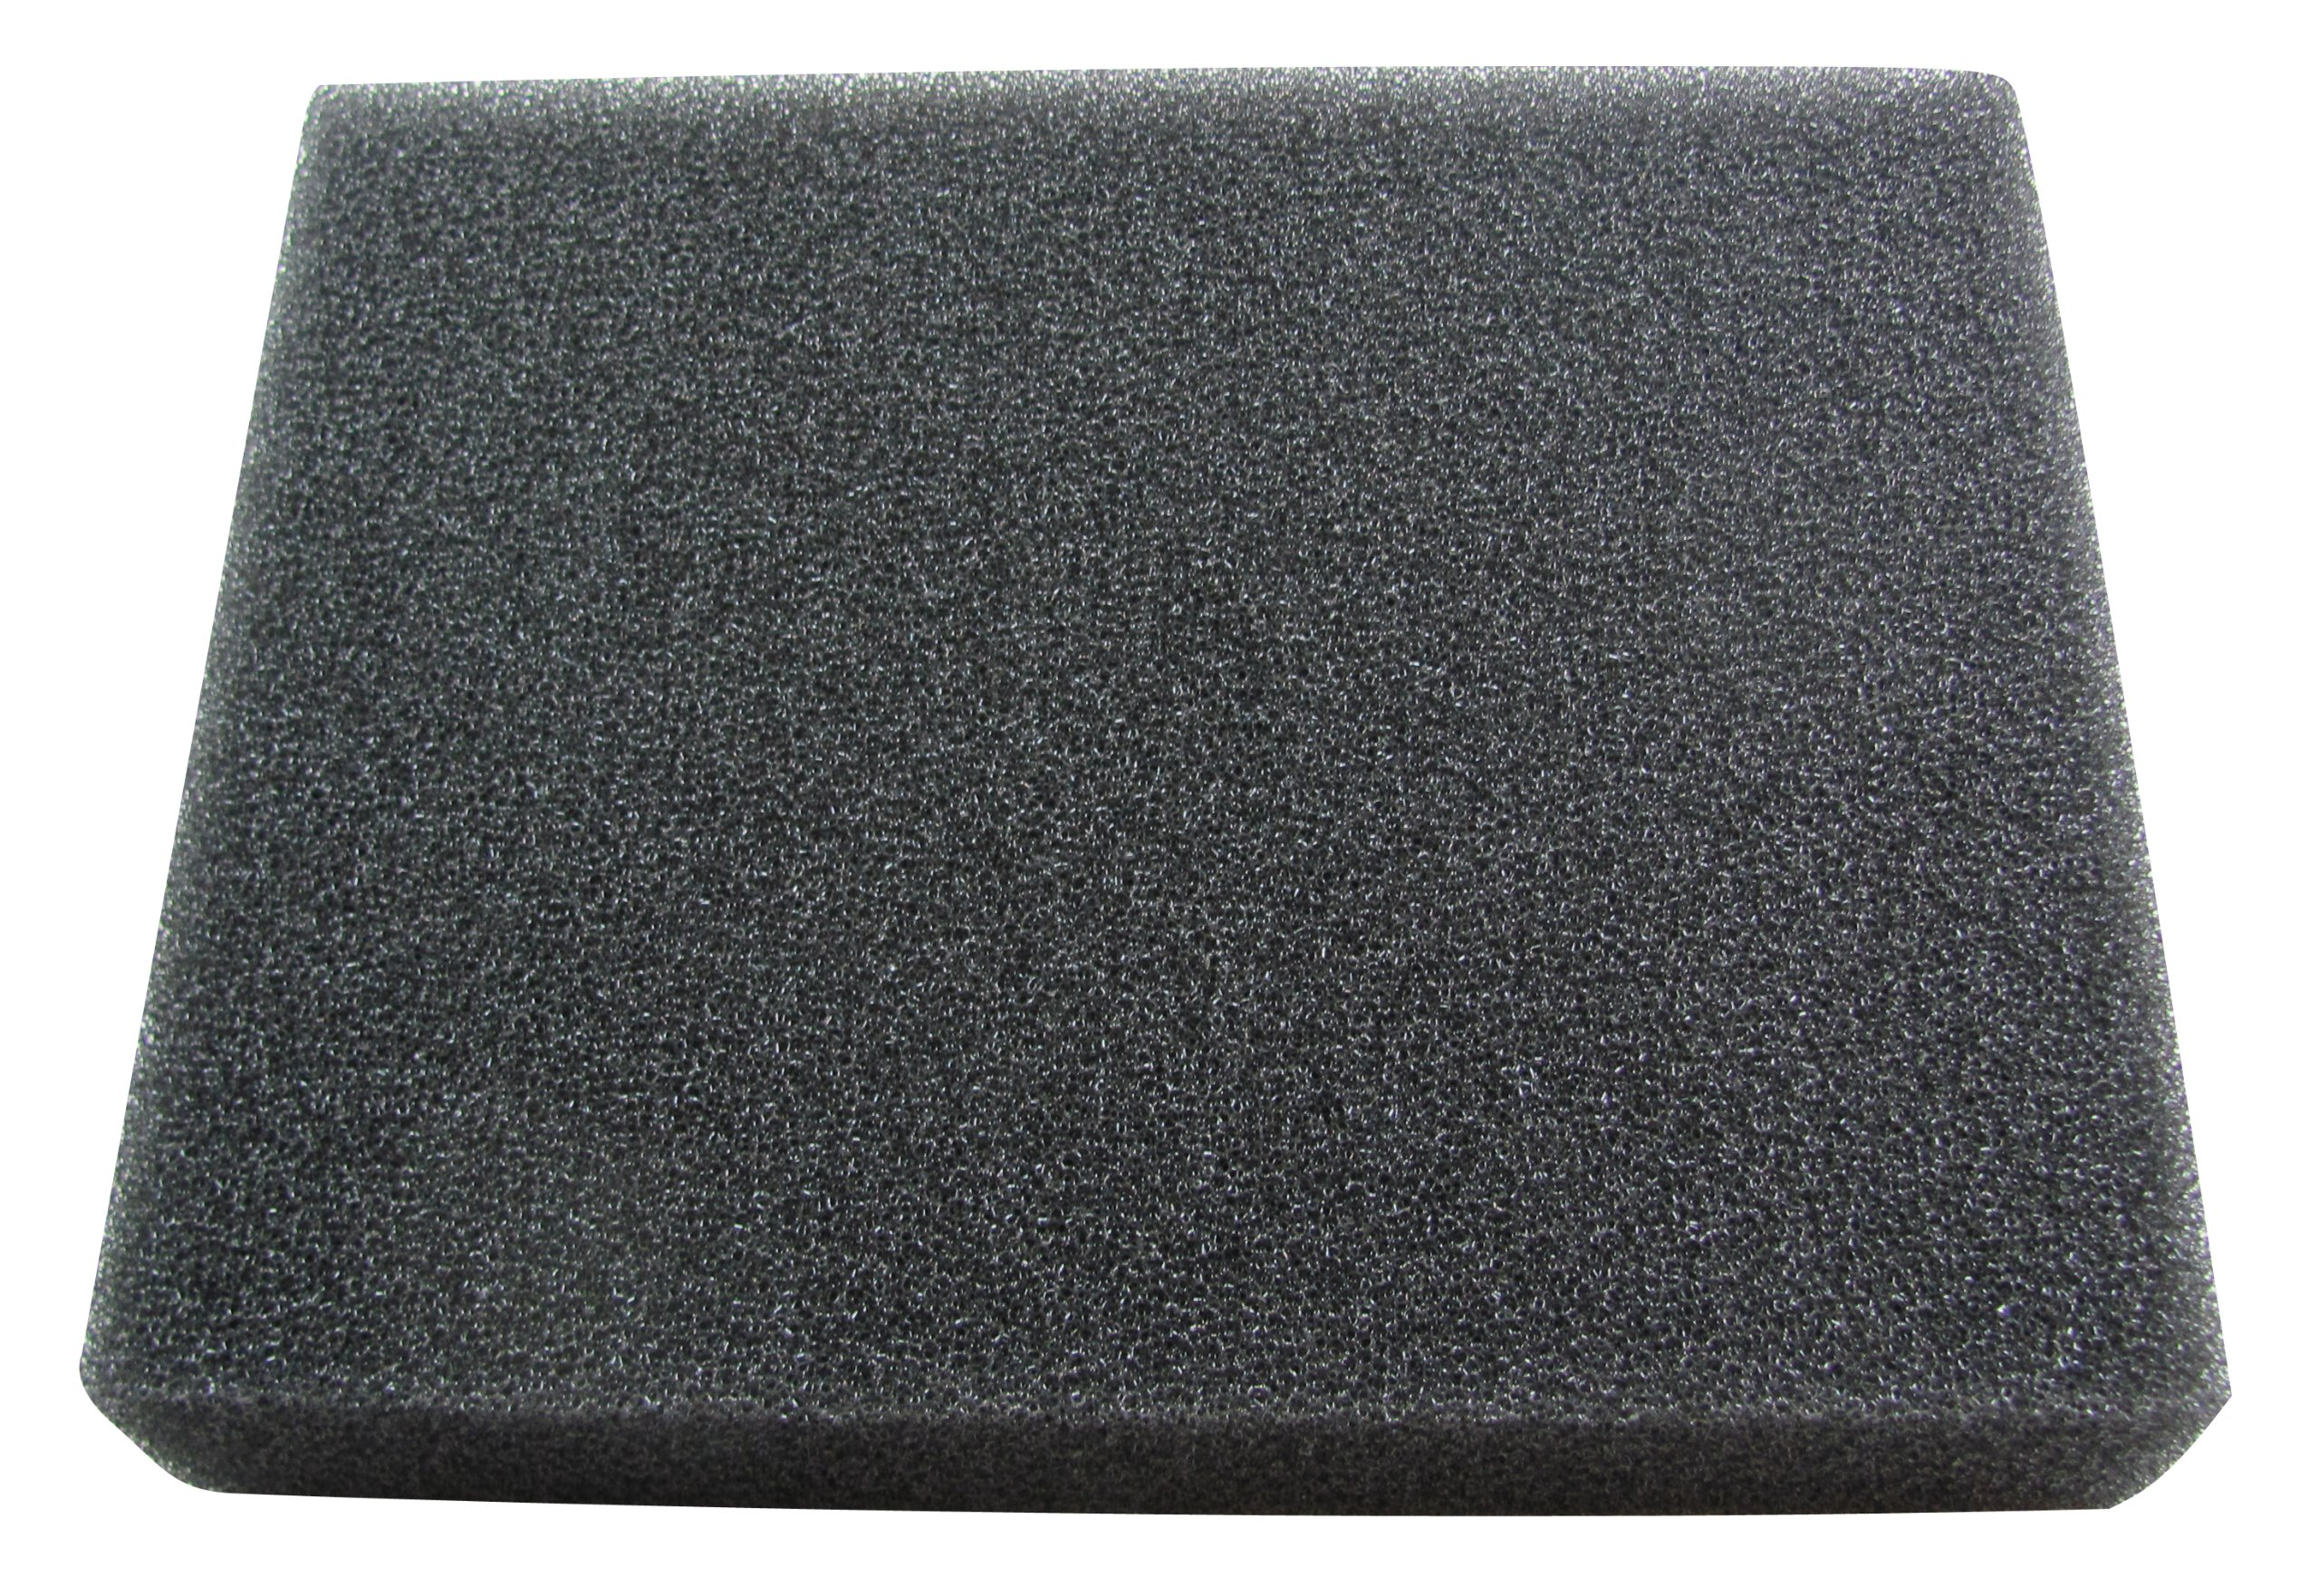 Uni Filter BF-3 8 X 10 X 2-Inch 30 PPI Black Coarse Foam / Skid Plate by Uni Filter